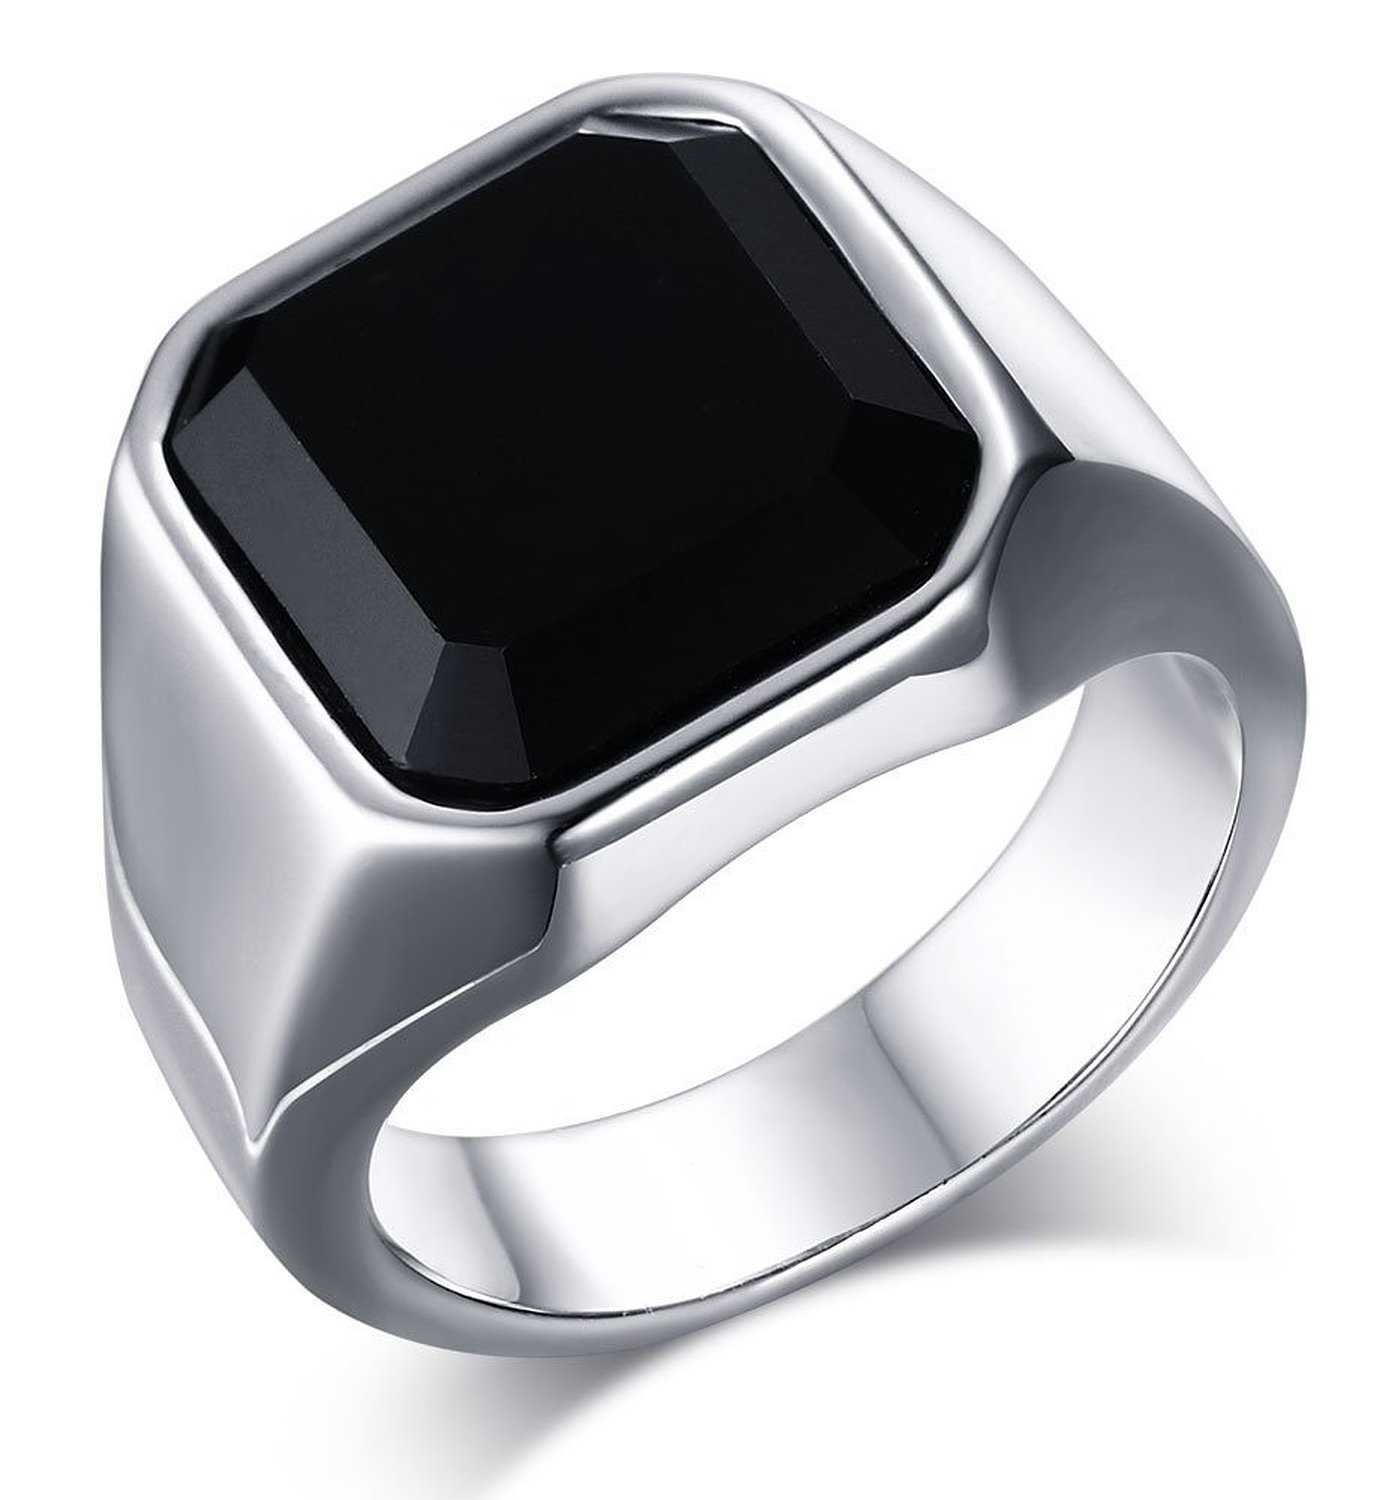 Mealguet Jewelry Fashion Stainless Steel Signet Ring with Black Agate for Men|Amazon.com